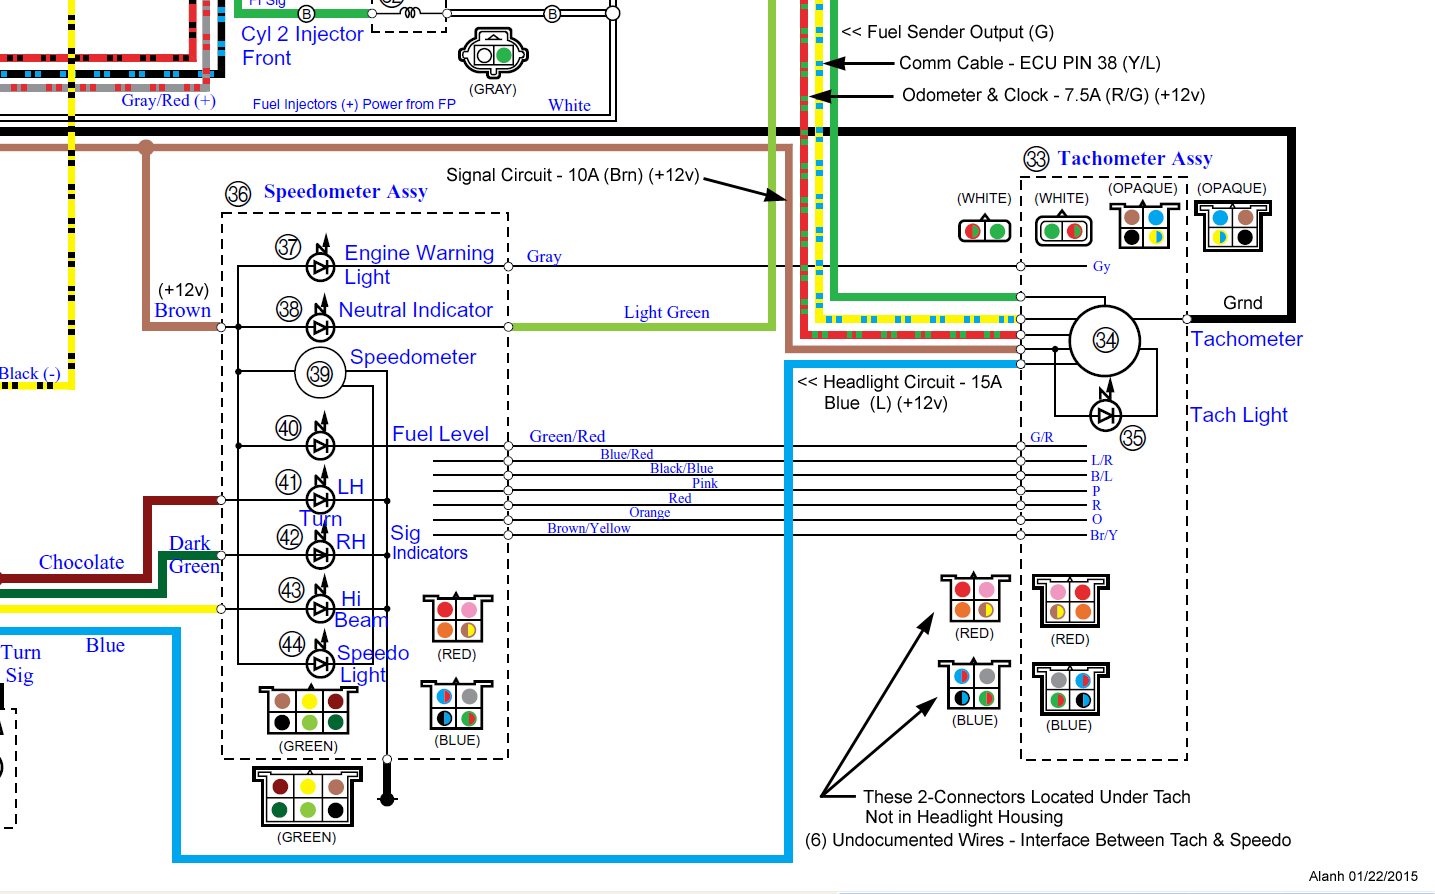 Diagram 2003 Yamaha Road Star Wiring Diagram Full Version Hd Quality Wiring Diagram Sitexkula Festadelluvavagliagli It